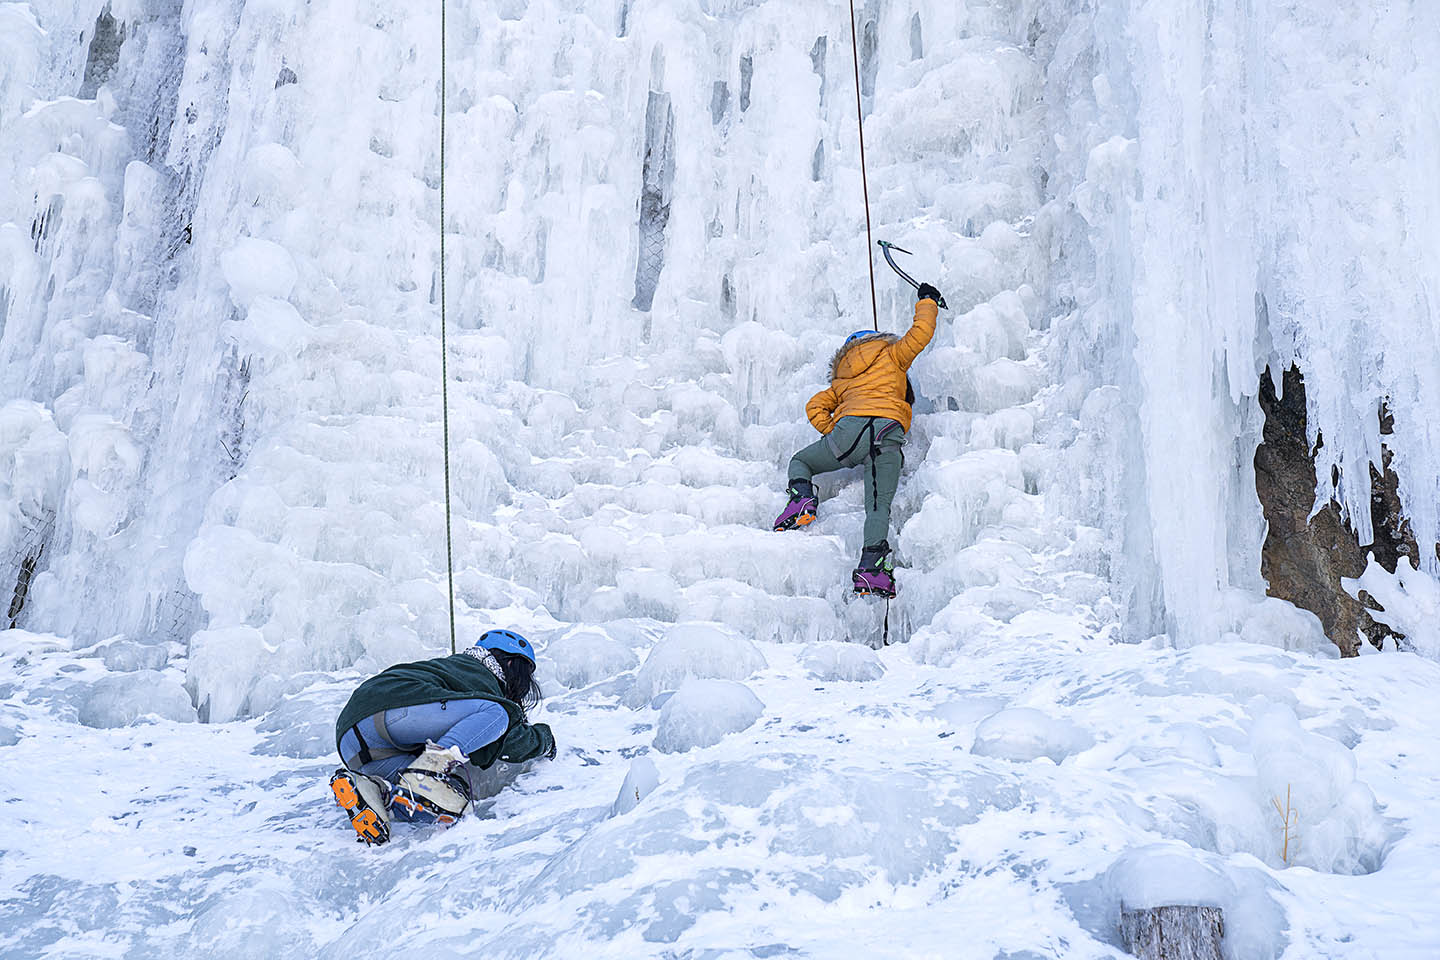 Sapana Rai, 14, left, and Susmita Limbu, 14, right, work their way up during an ice climb at Camp Alexander at Lake George, Colo. on Feb. 17, 2017. The camp is run by the Boy Scouts of America.